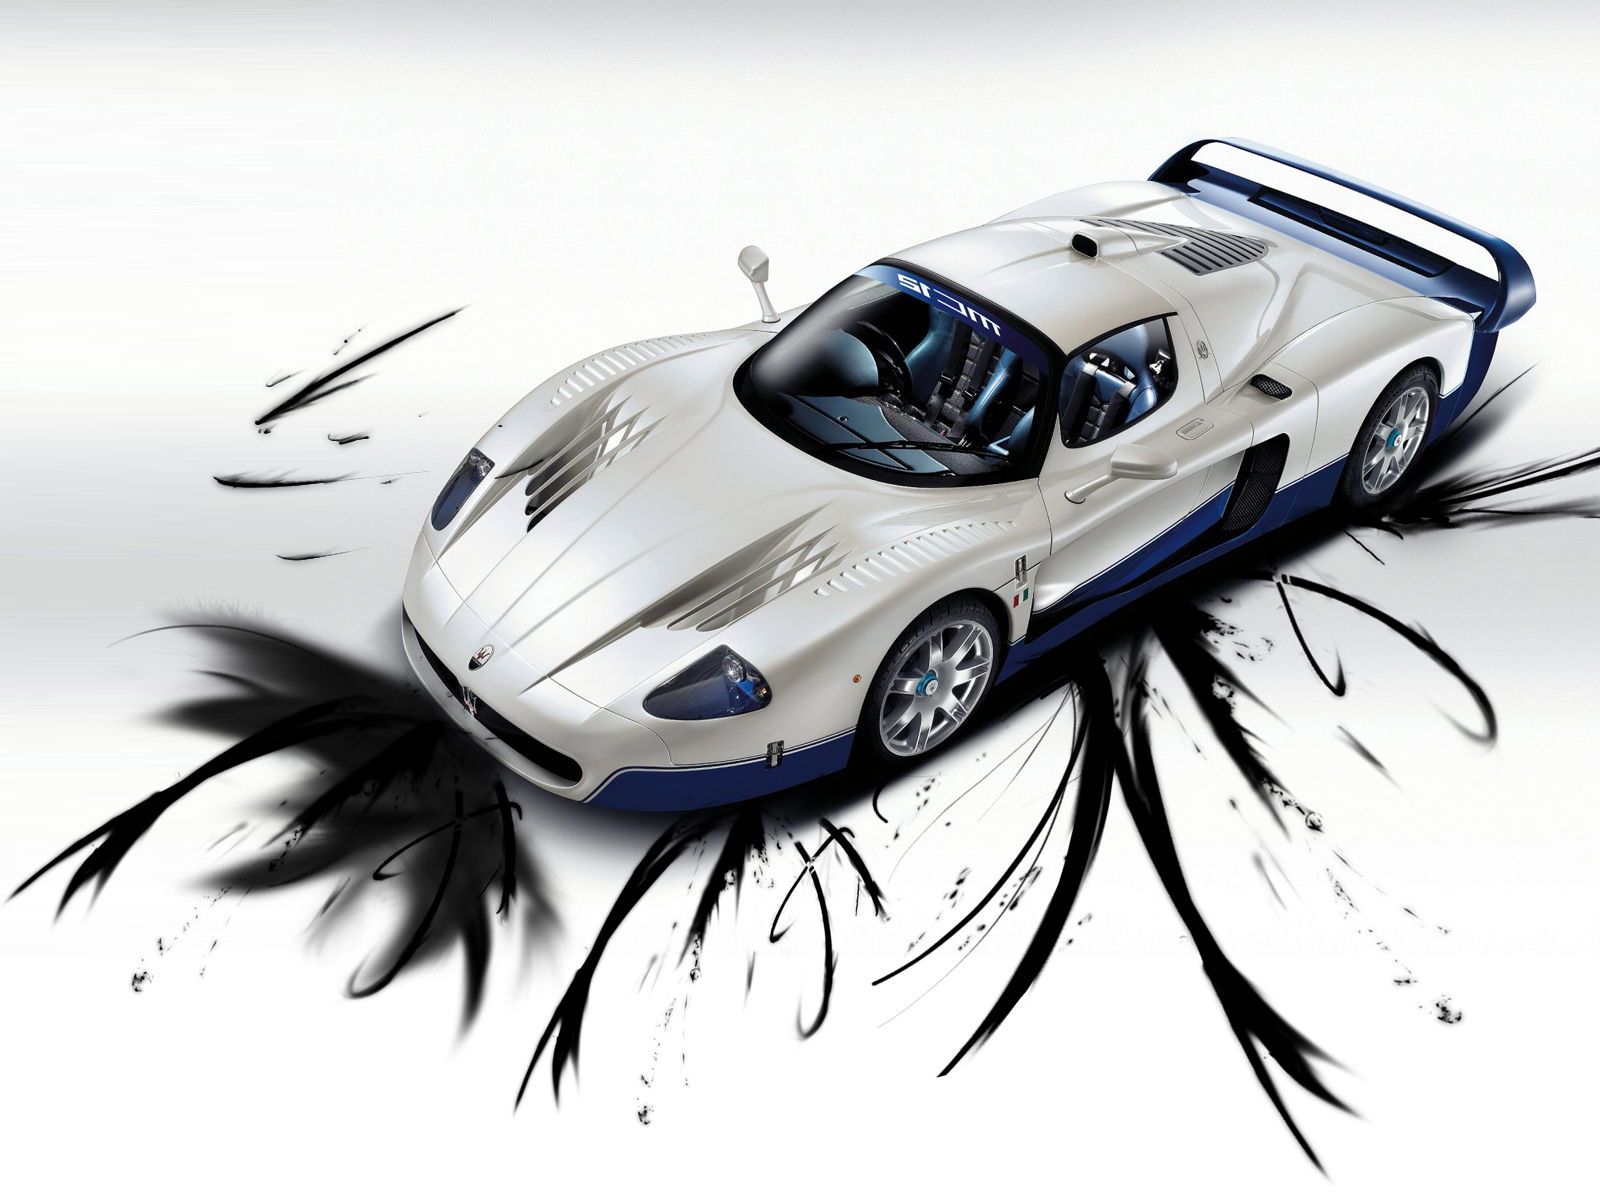 cars wallpapers hd cool cars pictures hd cool cars images hd cool cars 1600x1200